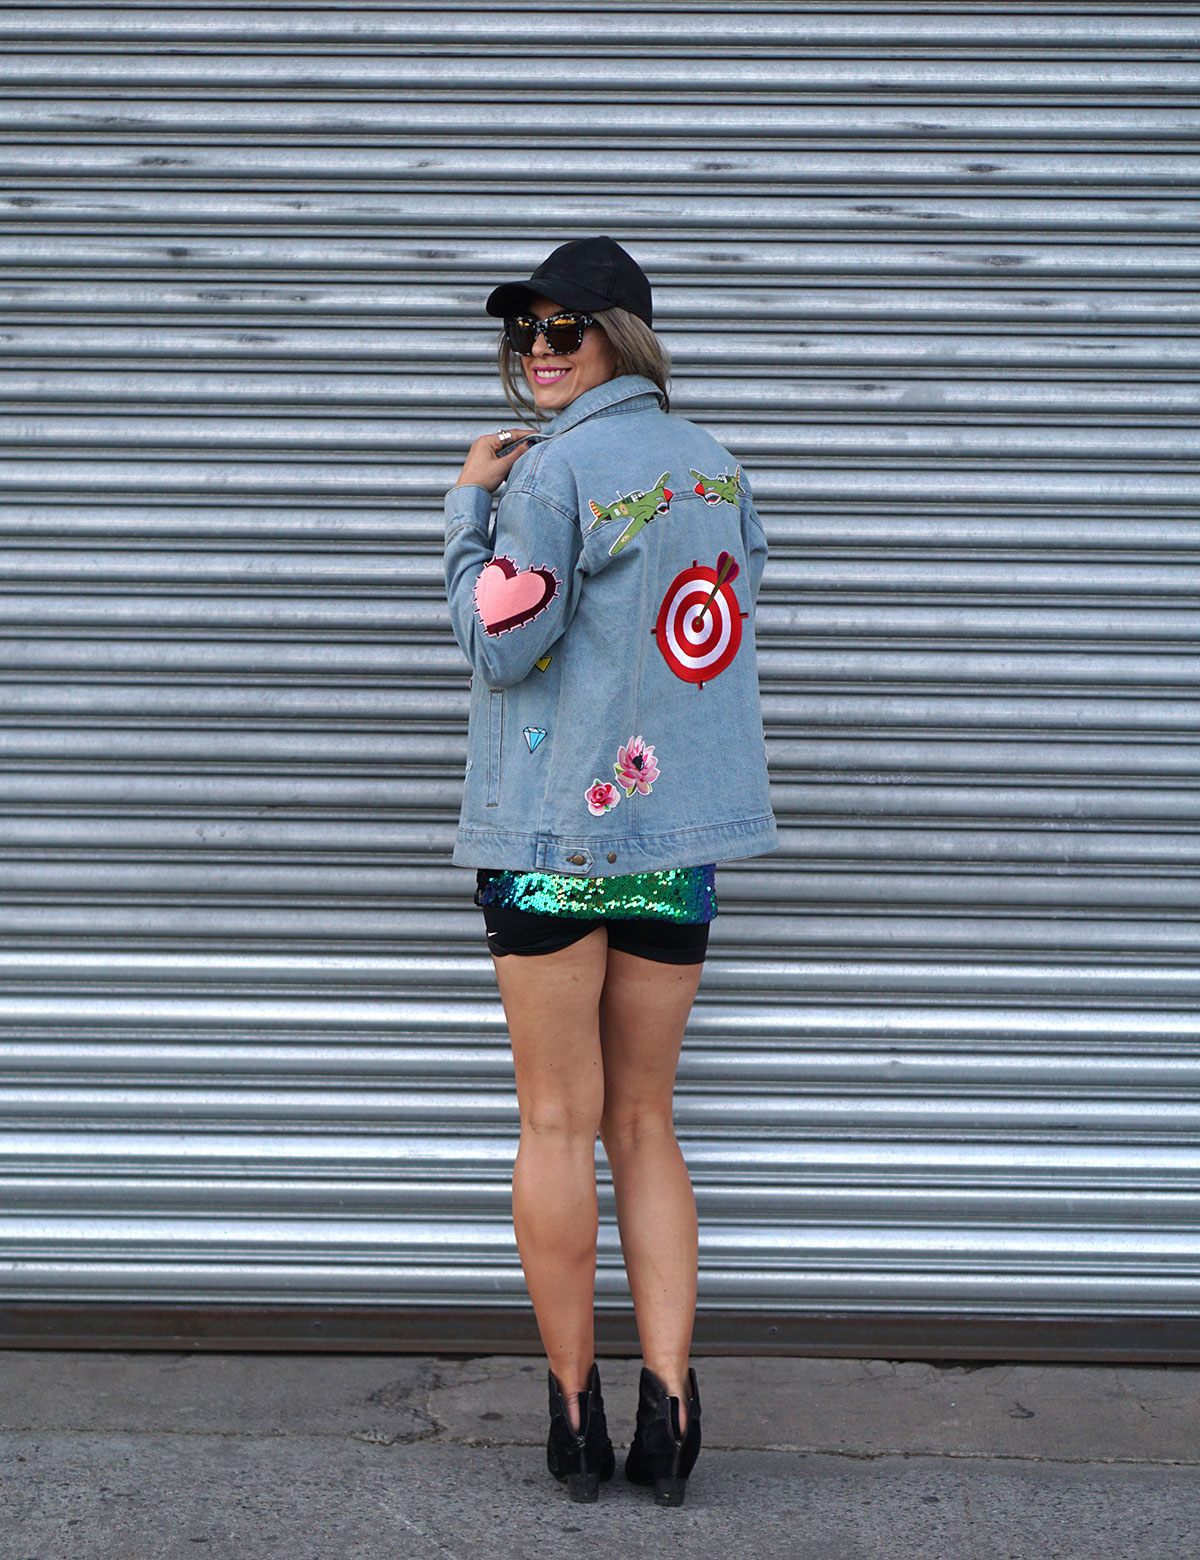 Reflex Love You With All My Art Denim Jacket Susie Tsai